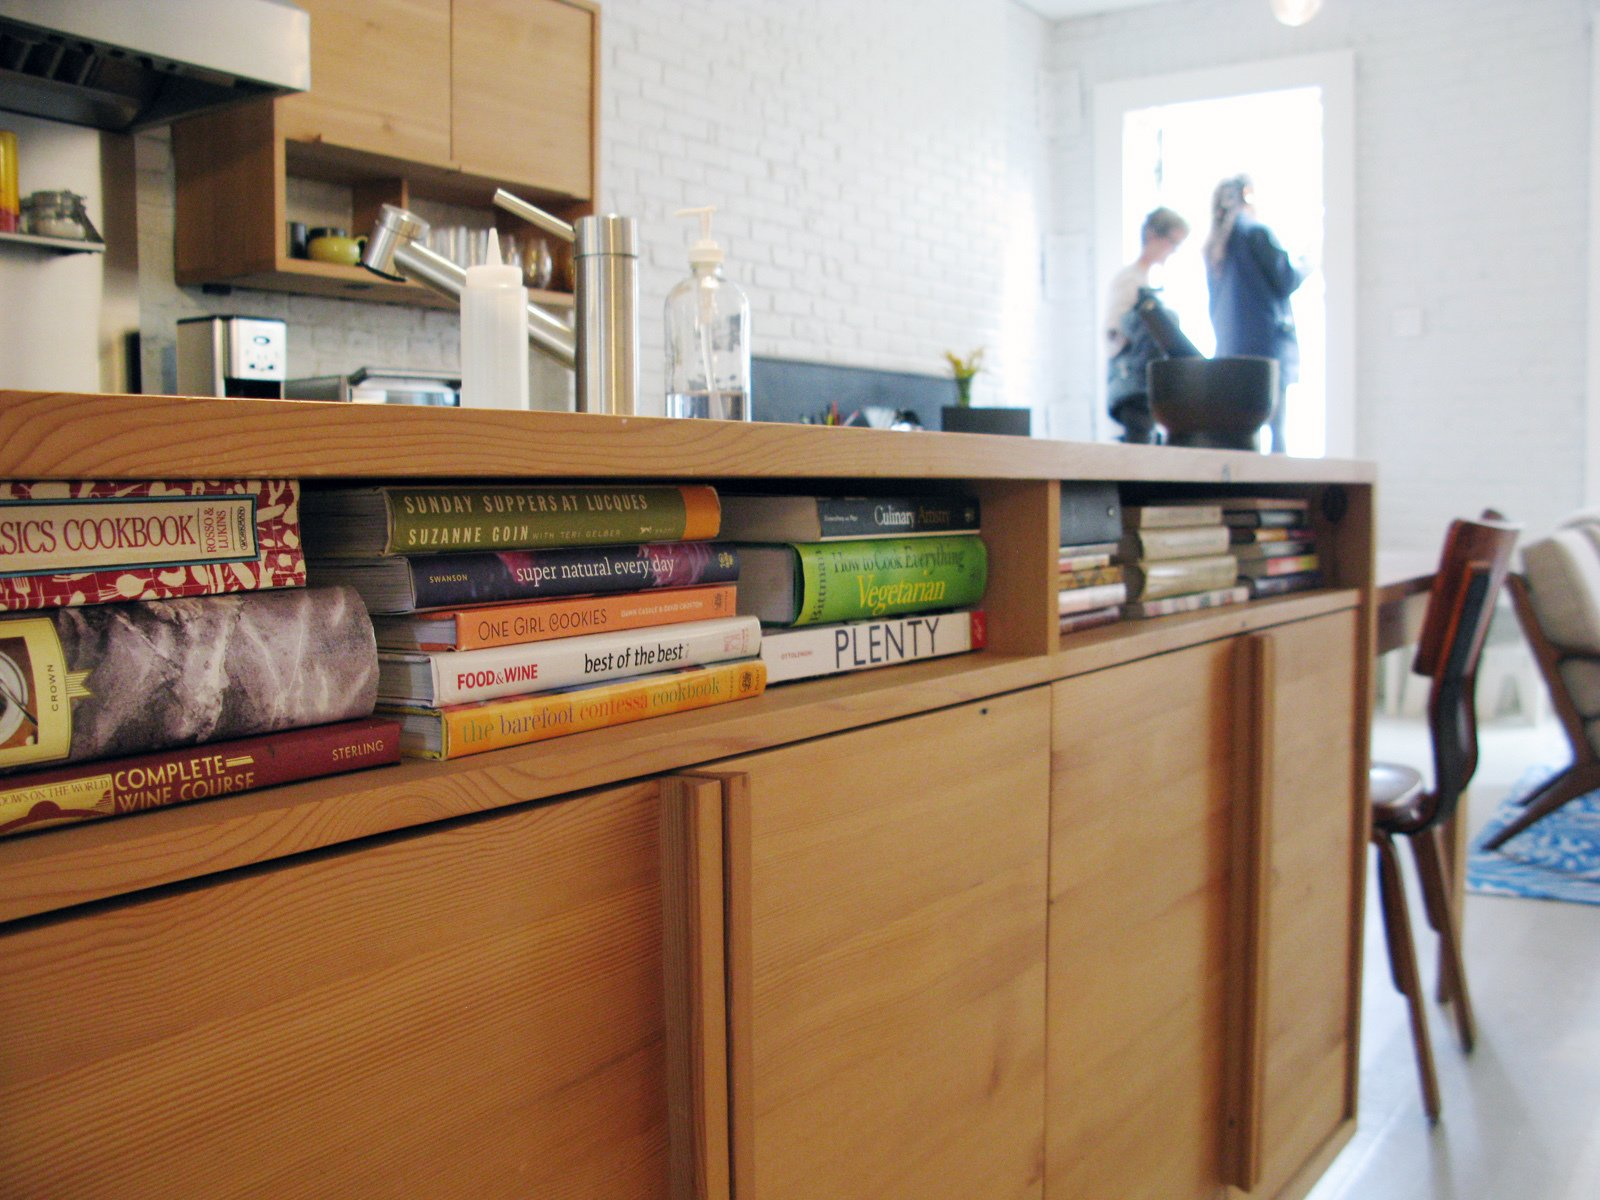 """Cubby holes under the kitchen counter house cookbooks. The cabinets are made from salvaged wood. """"The kitchen is where they like to be at home,"""" Bischoff says. """"That's why it's in the middle of the floor plan.""""  Photo 51 of 51 in City Modern Home Tours: Brooklyn"""